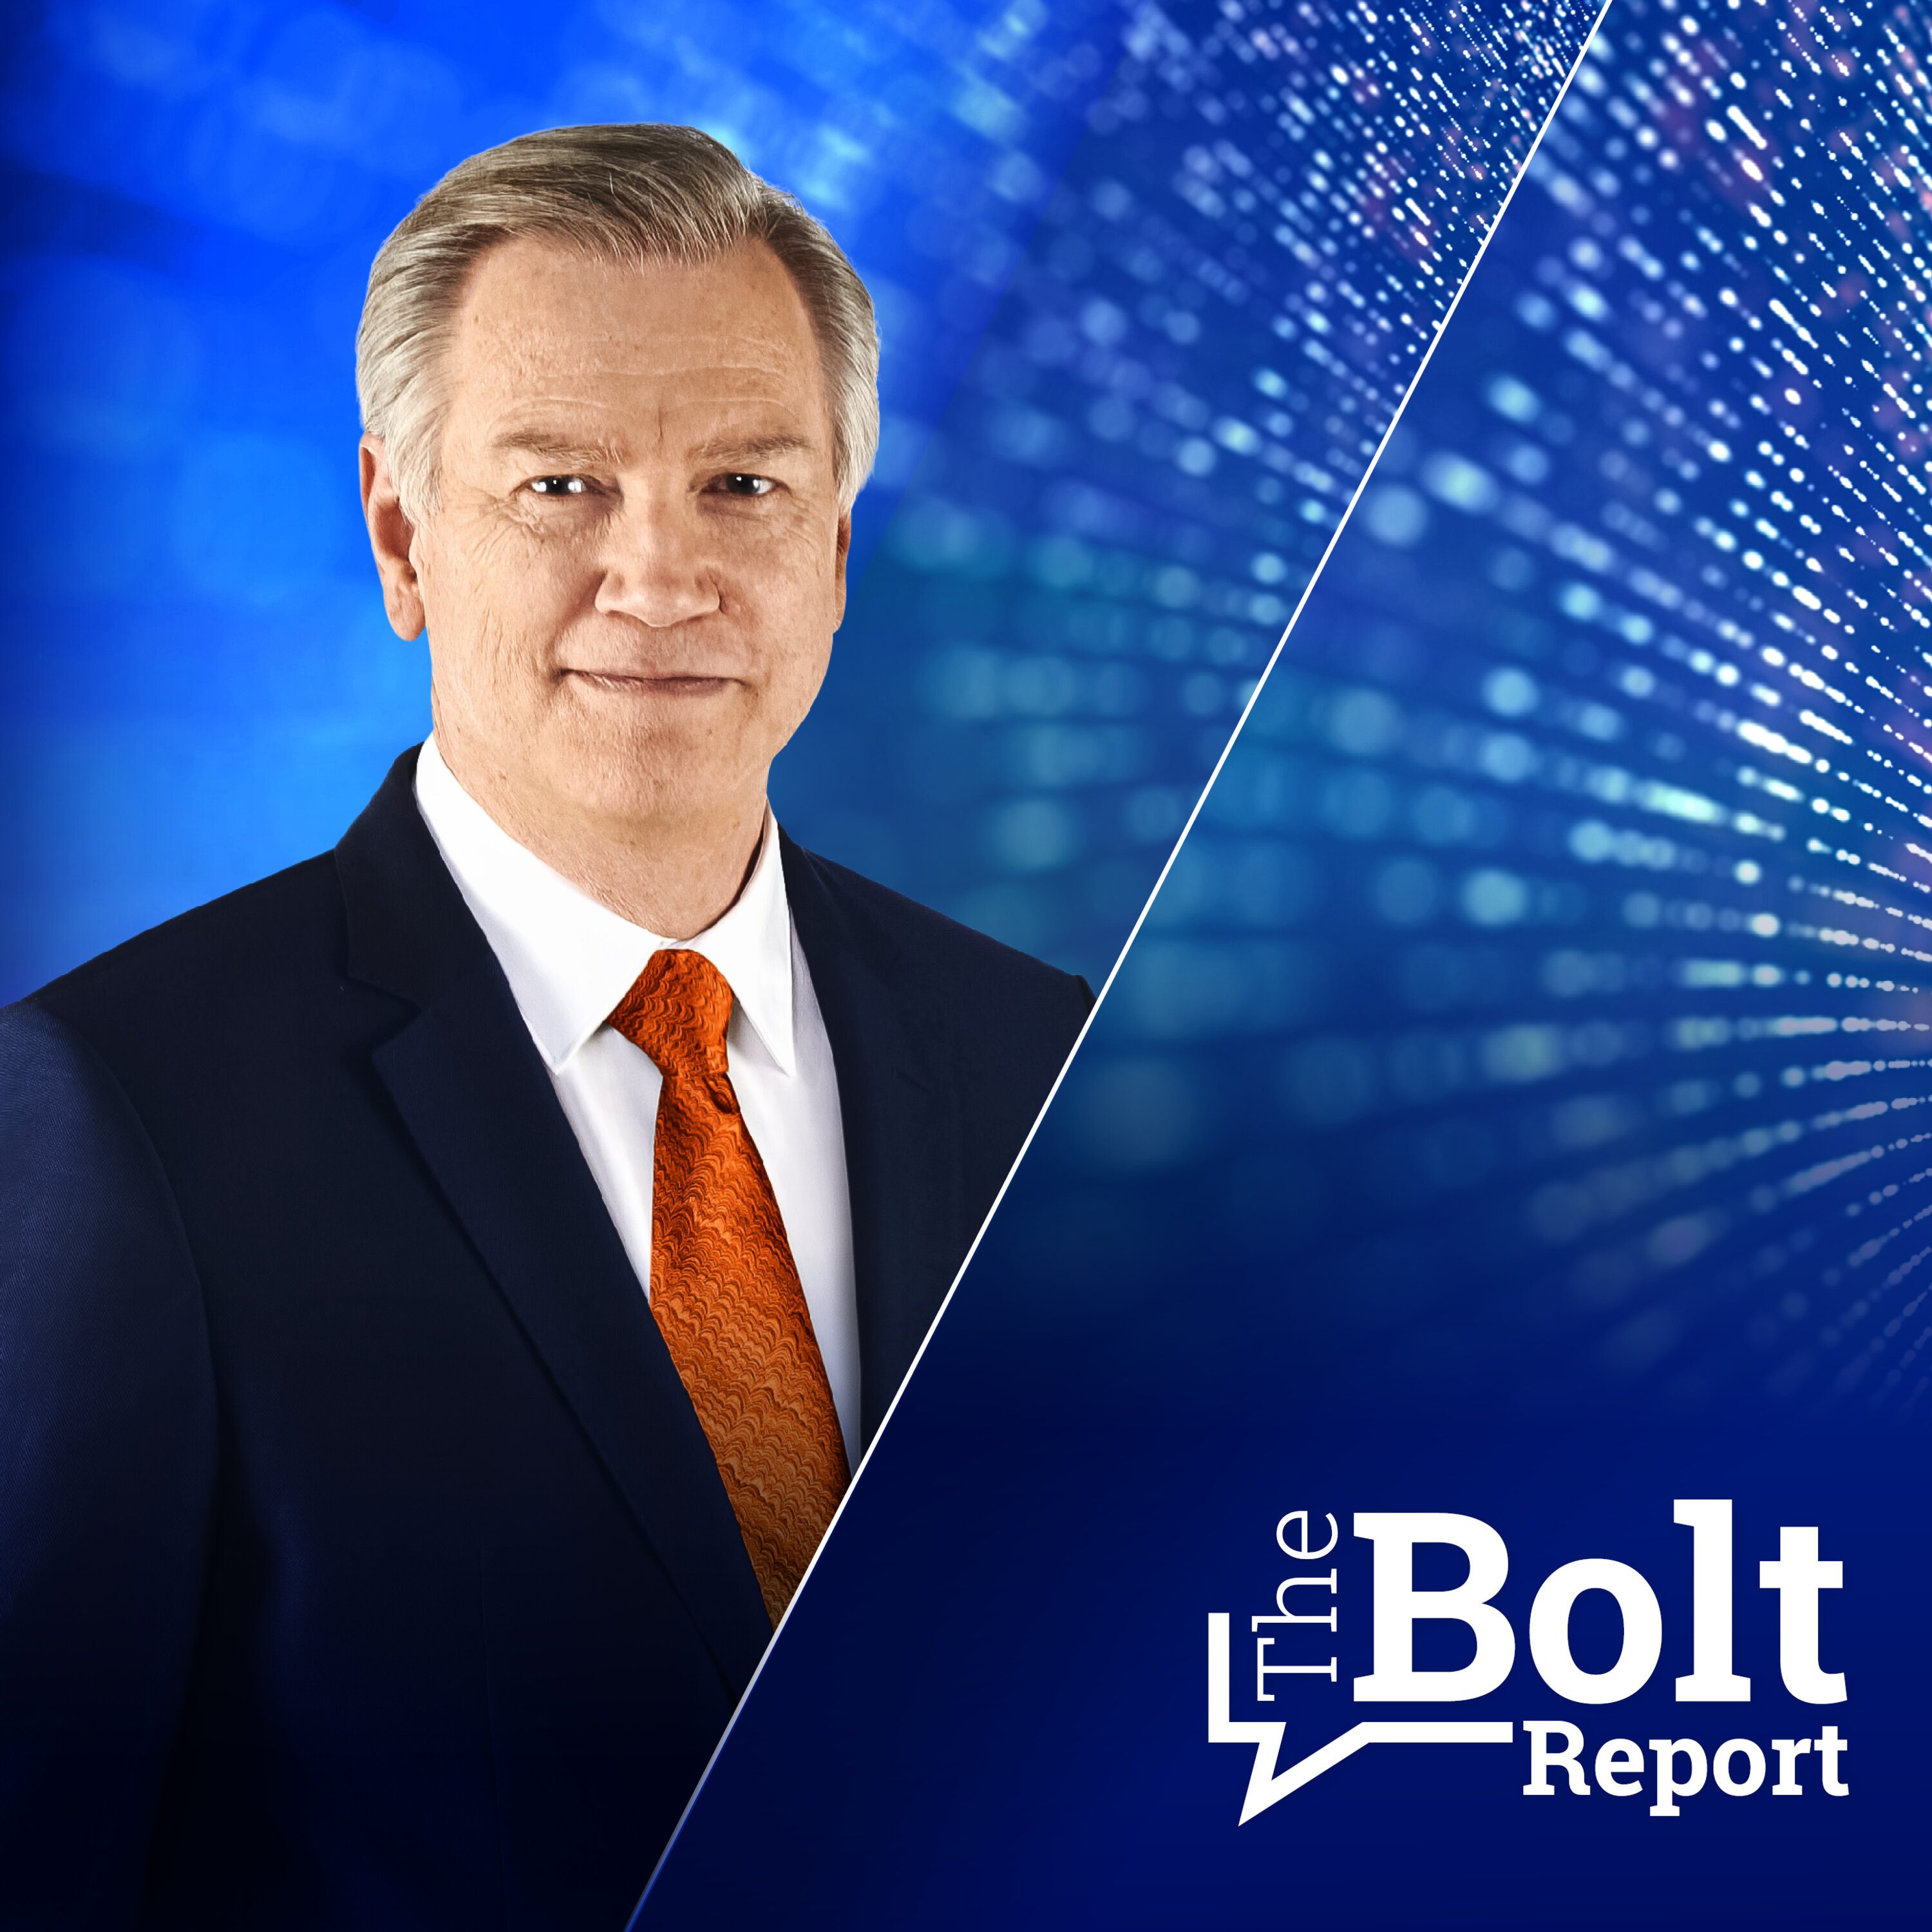 The Bolt Report, Monday 12th October